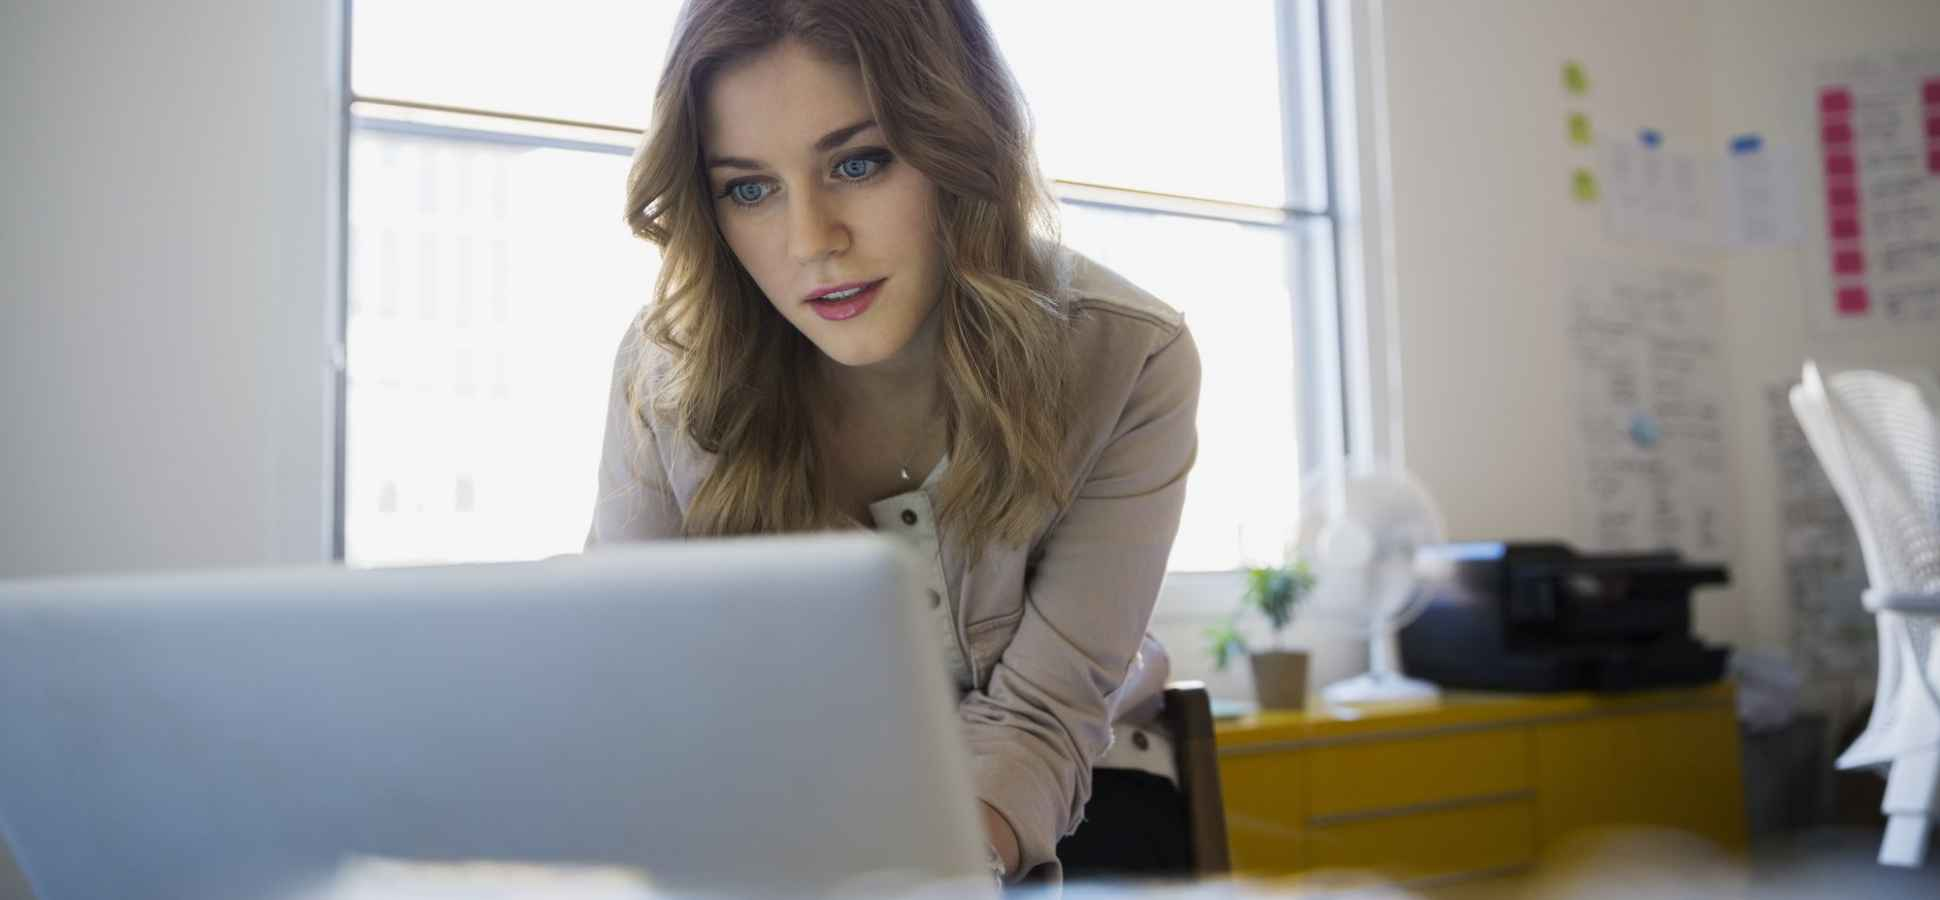 Starting A Company In 2017? Here Are 7 Tools To Make Your Job A Whole Lot Easier